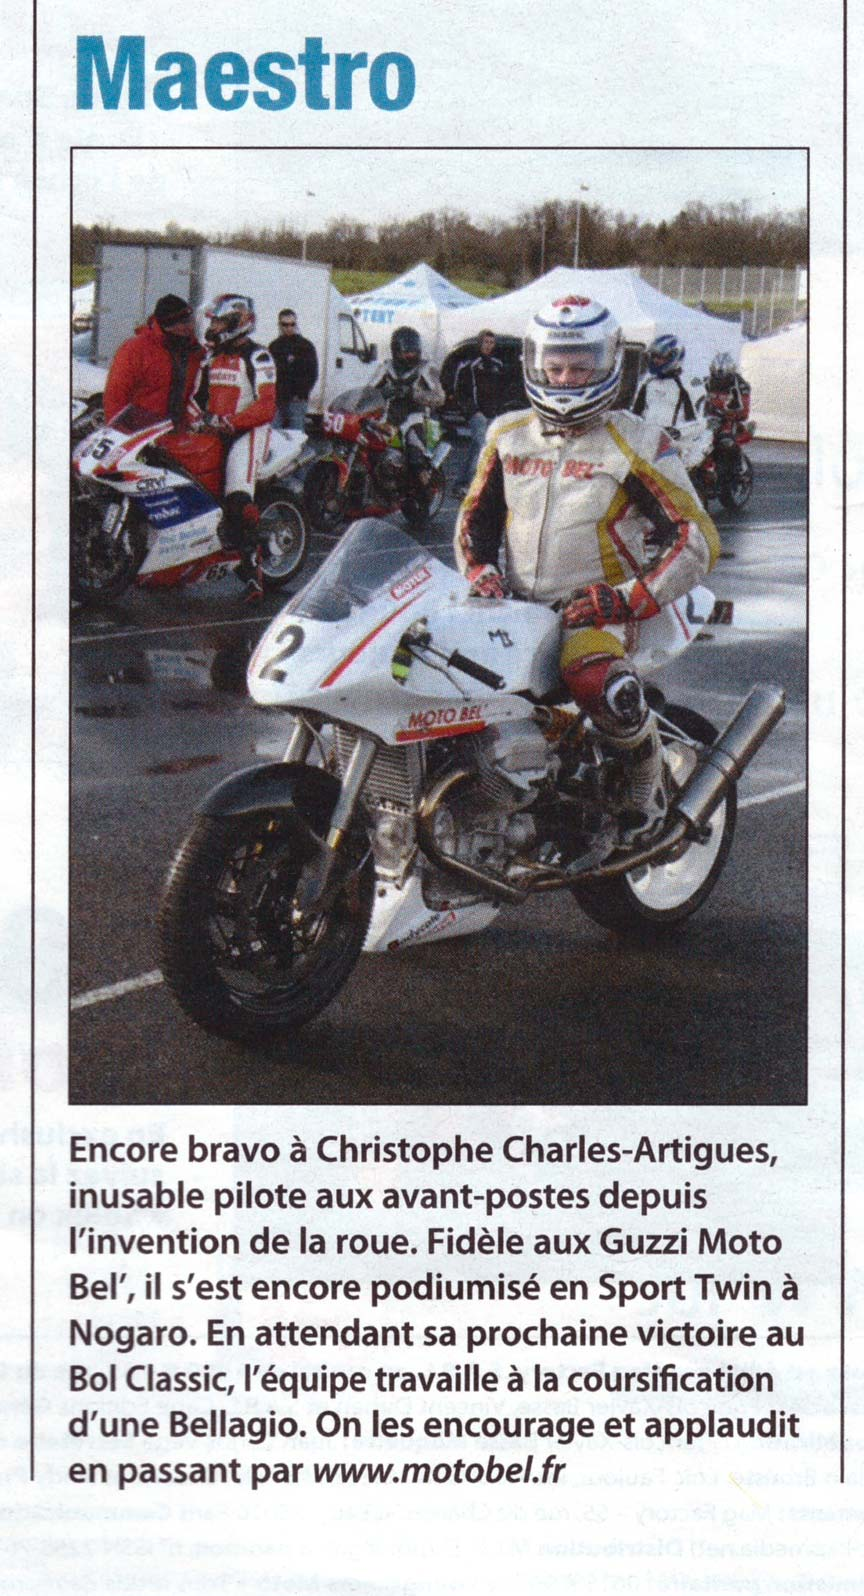 Young Timers 9 - Charles-Artigues en SporTwin